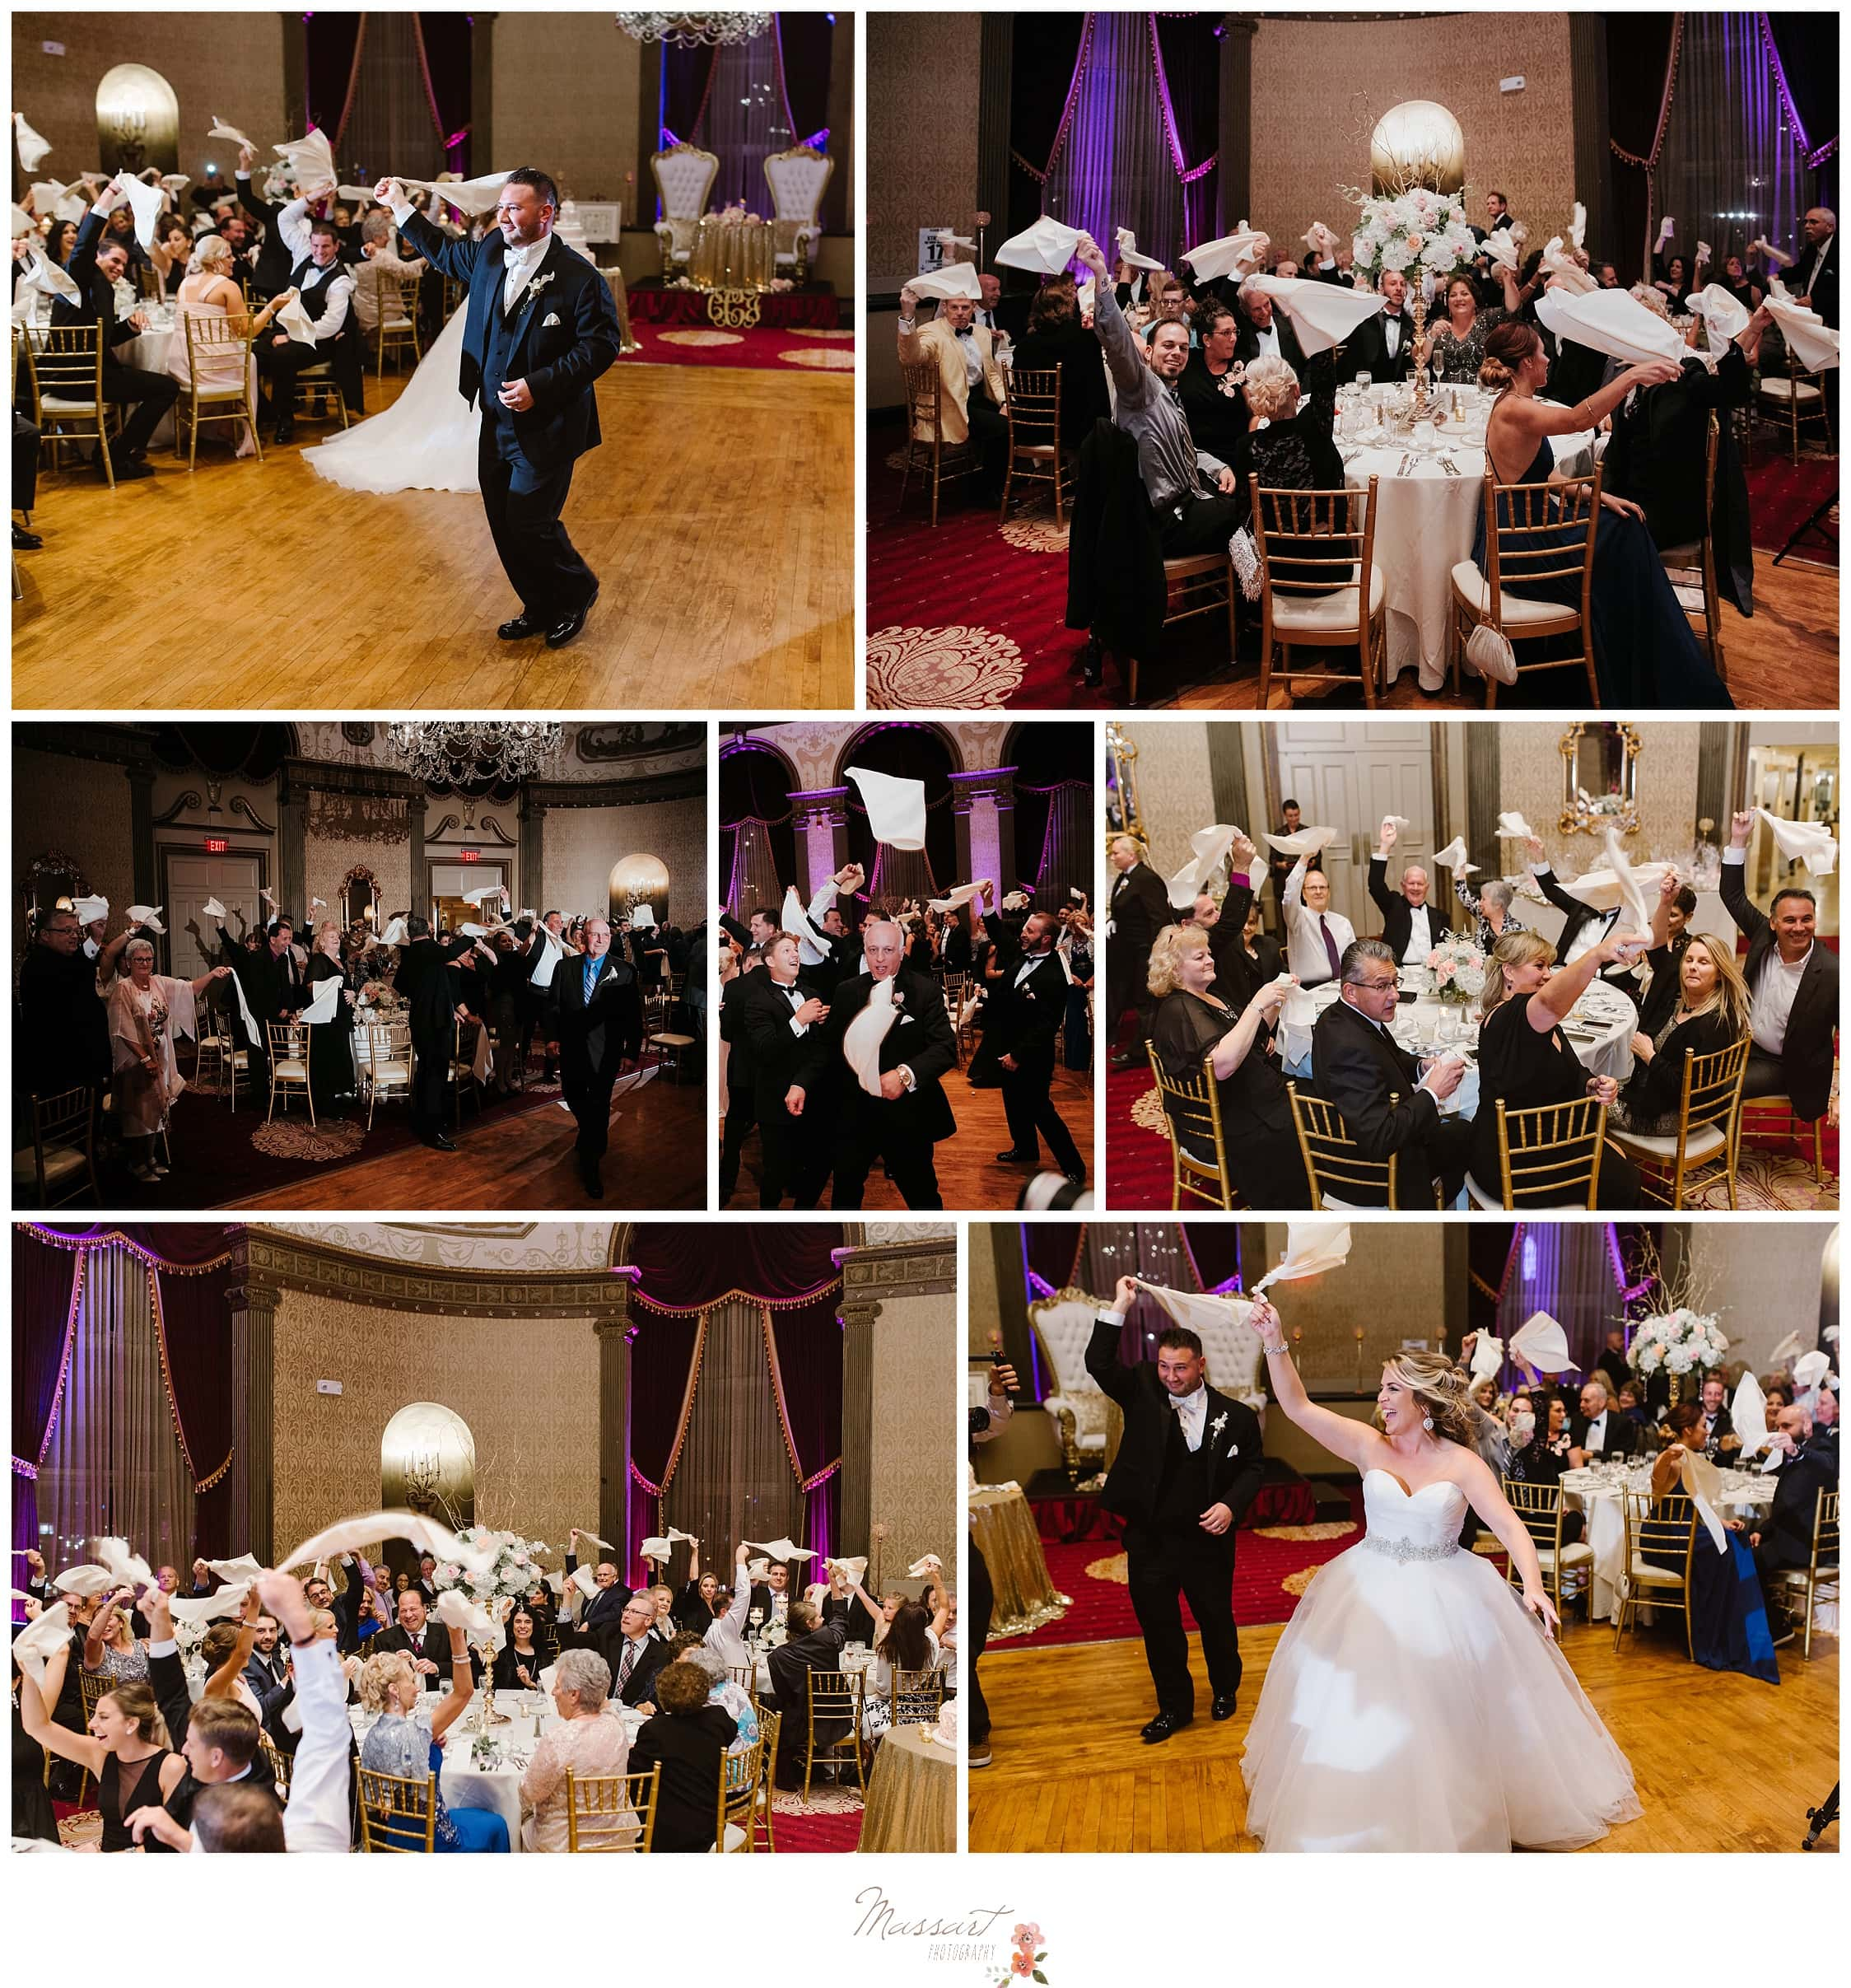 Guests dance at the Biltmore wedding photographed by Massart Photography Rhode Island